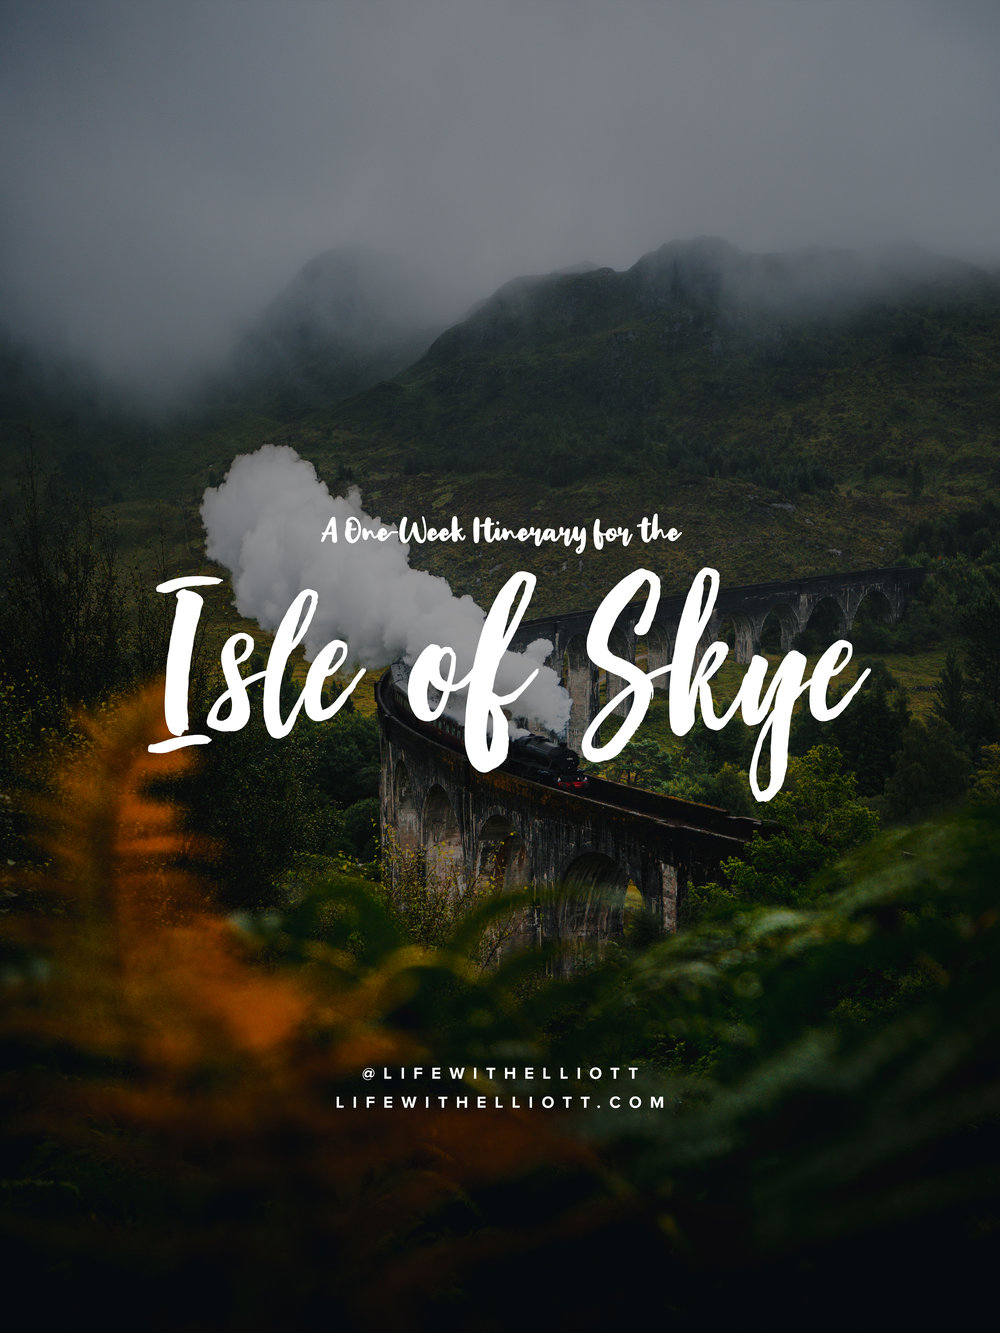 Isle of Skye: A One Week Trip Guide by LifewithElliott